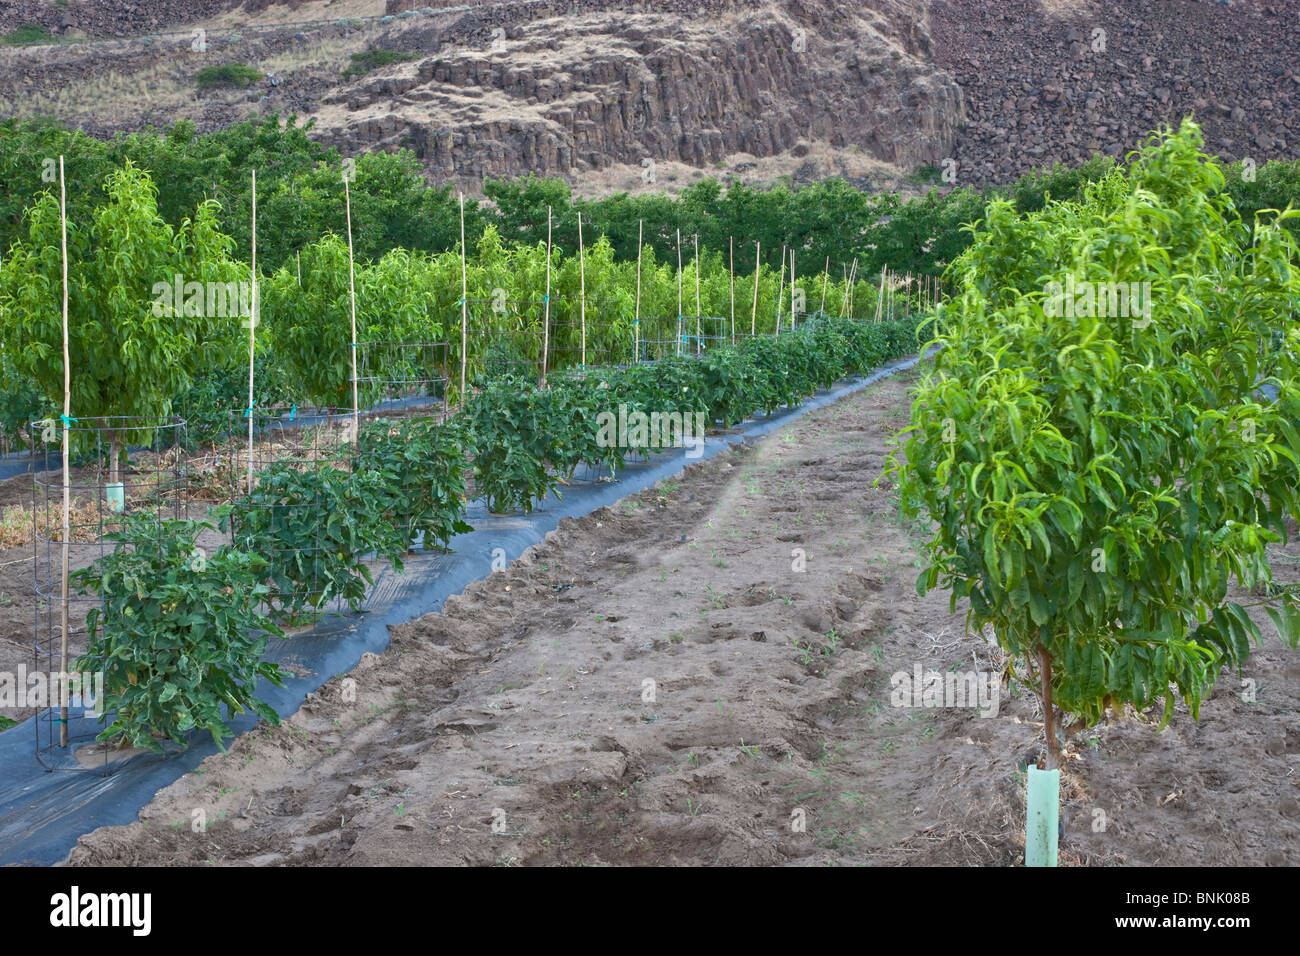 Intercropping, young Nectarine orchard, tomato plants - Stock Image